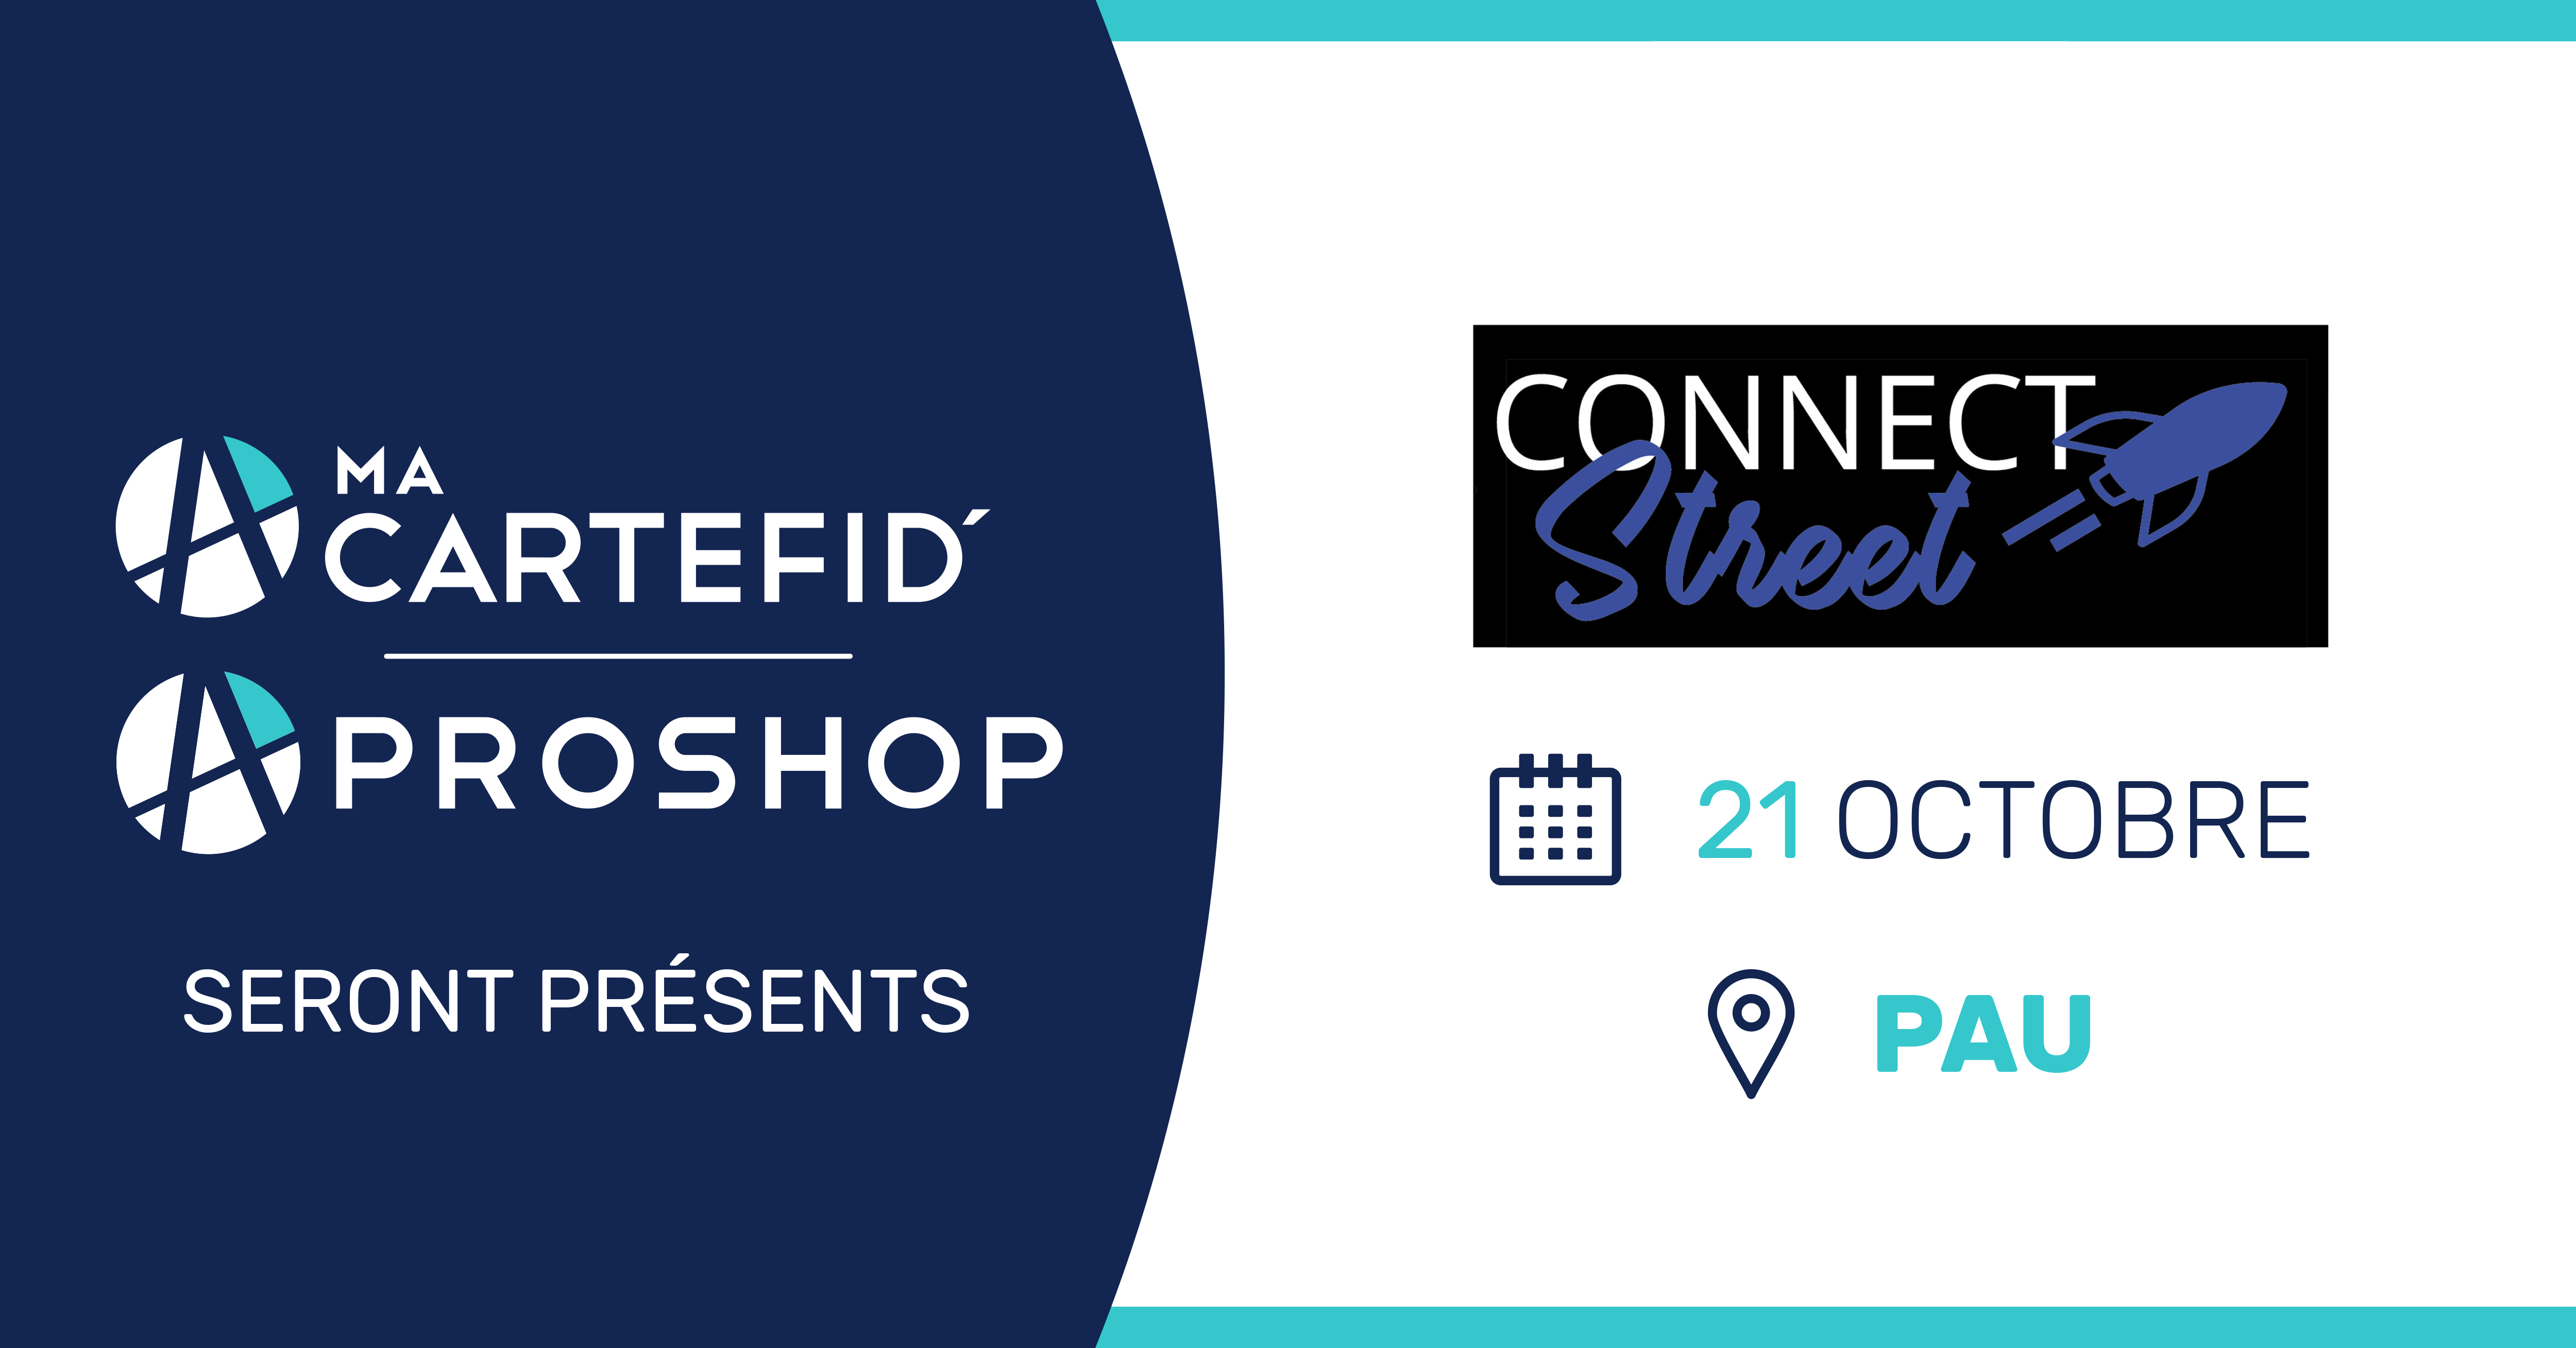 connect street pau macartefid proshop